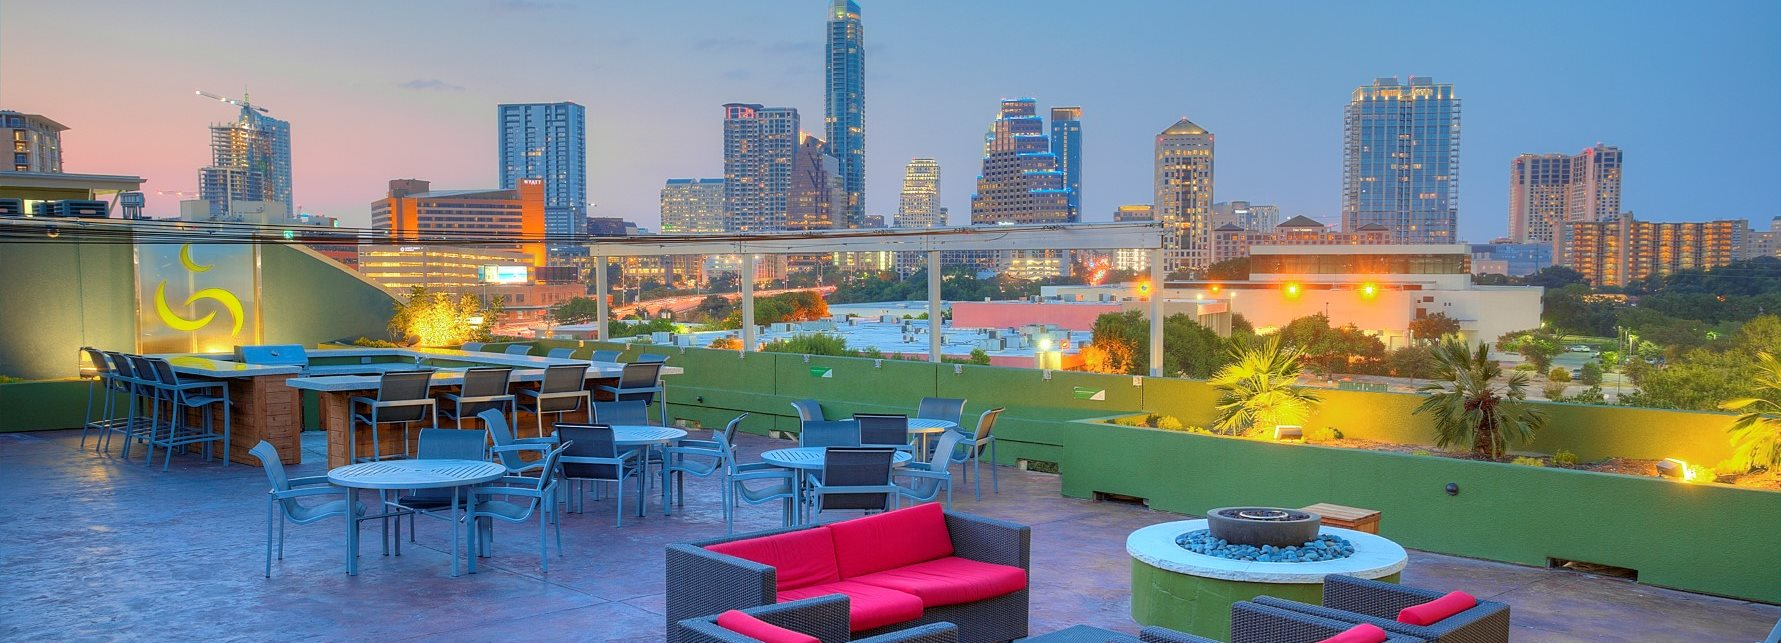 Rooftop Lounge With Panoramic Downtown Austin Views at Crescent, Texas, 78704